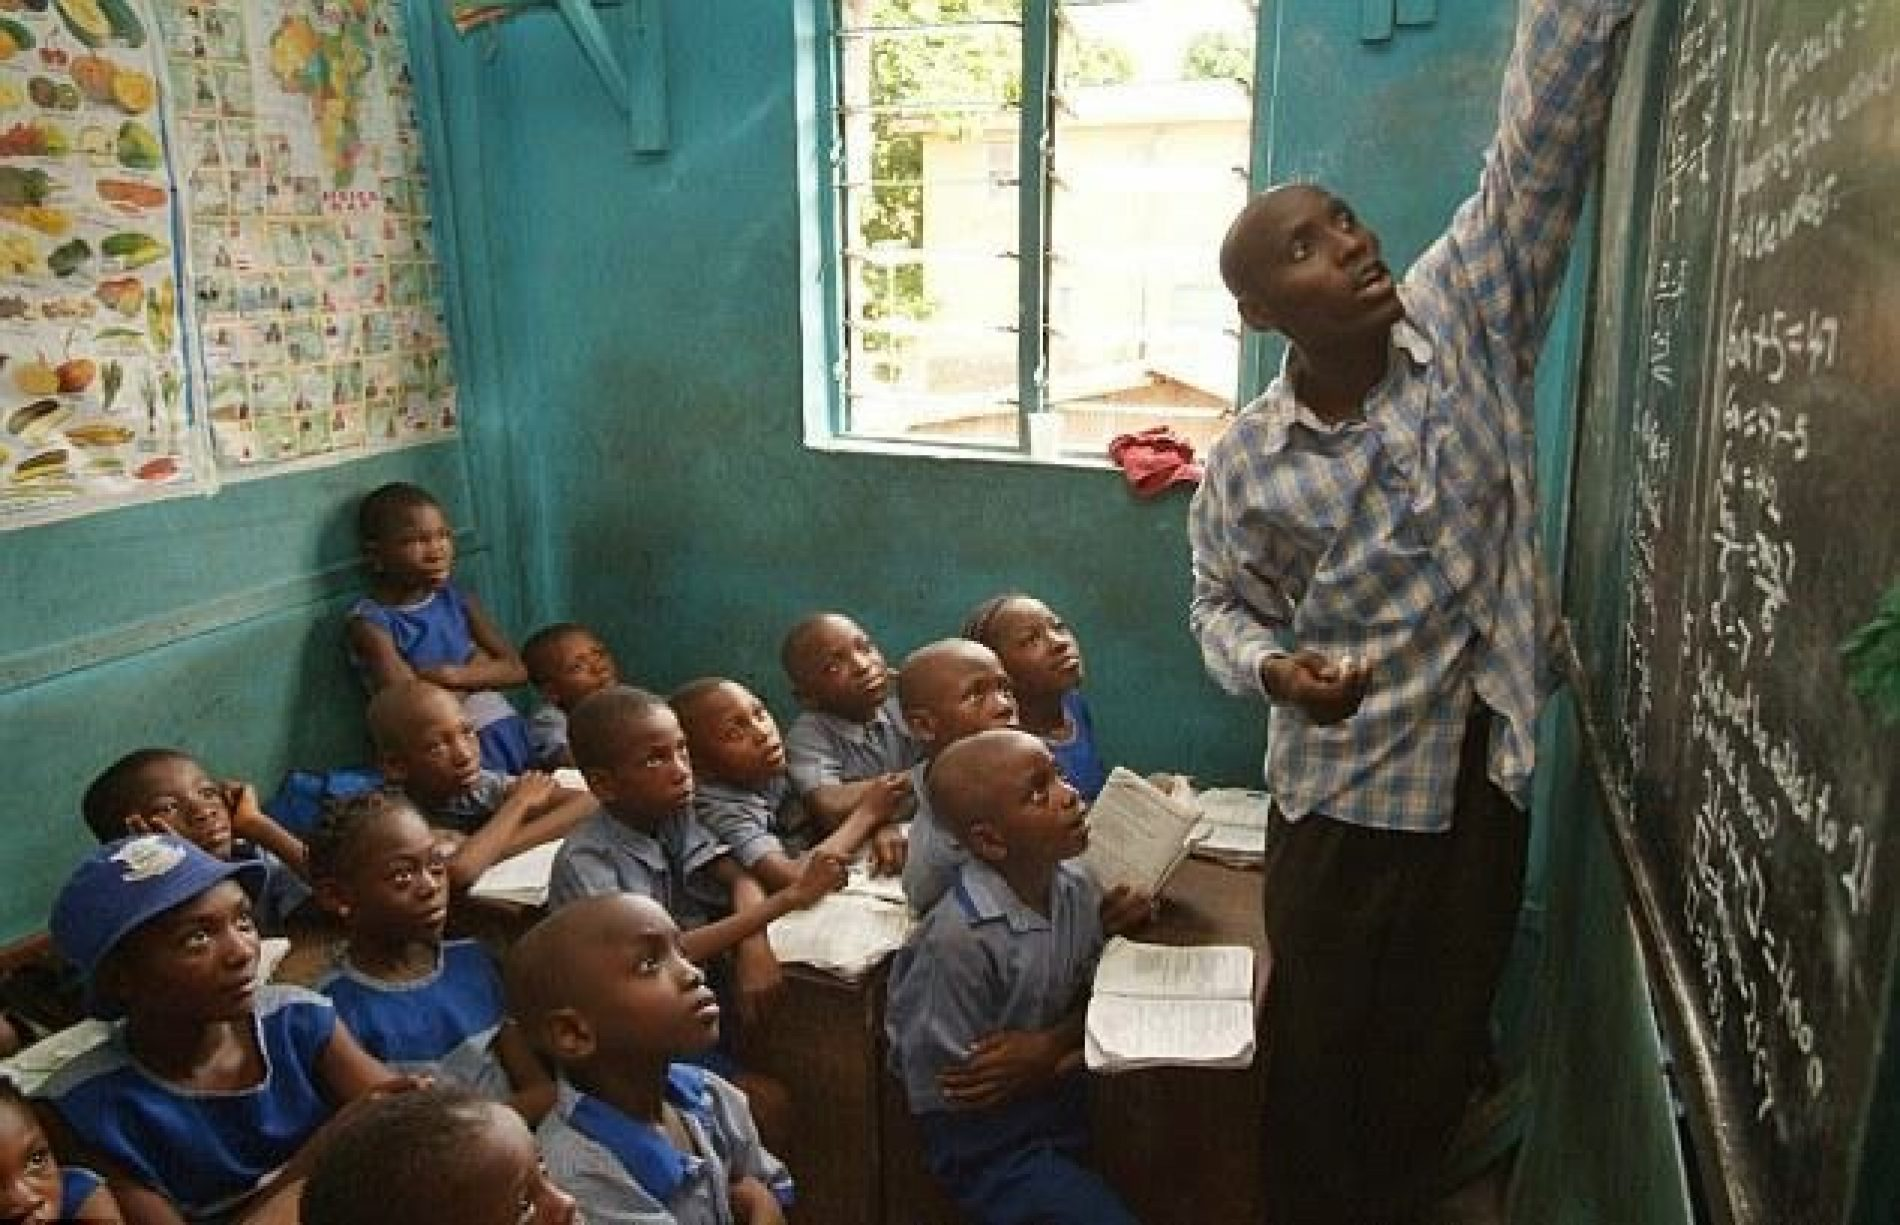 Zimbabwean school teacher's coming out unleashes a furious outcry